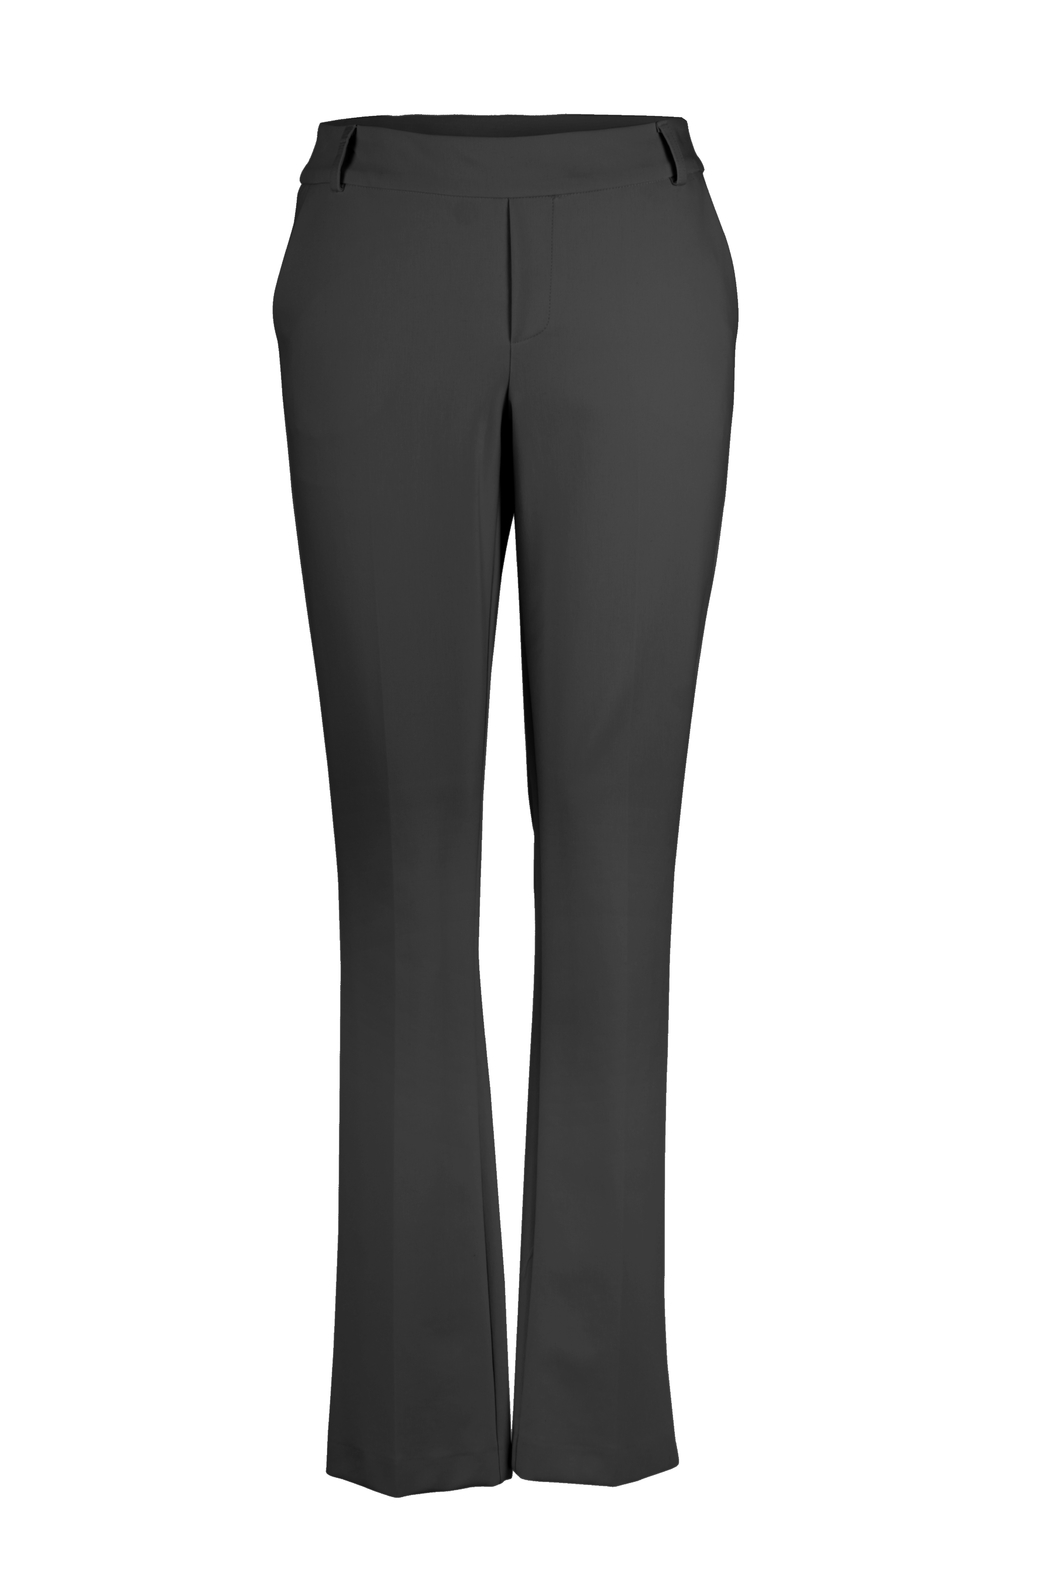 Up! Cavalli Twill Trouser - Front Cropped Image